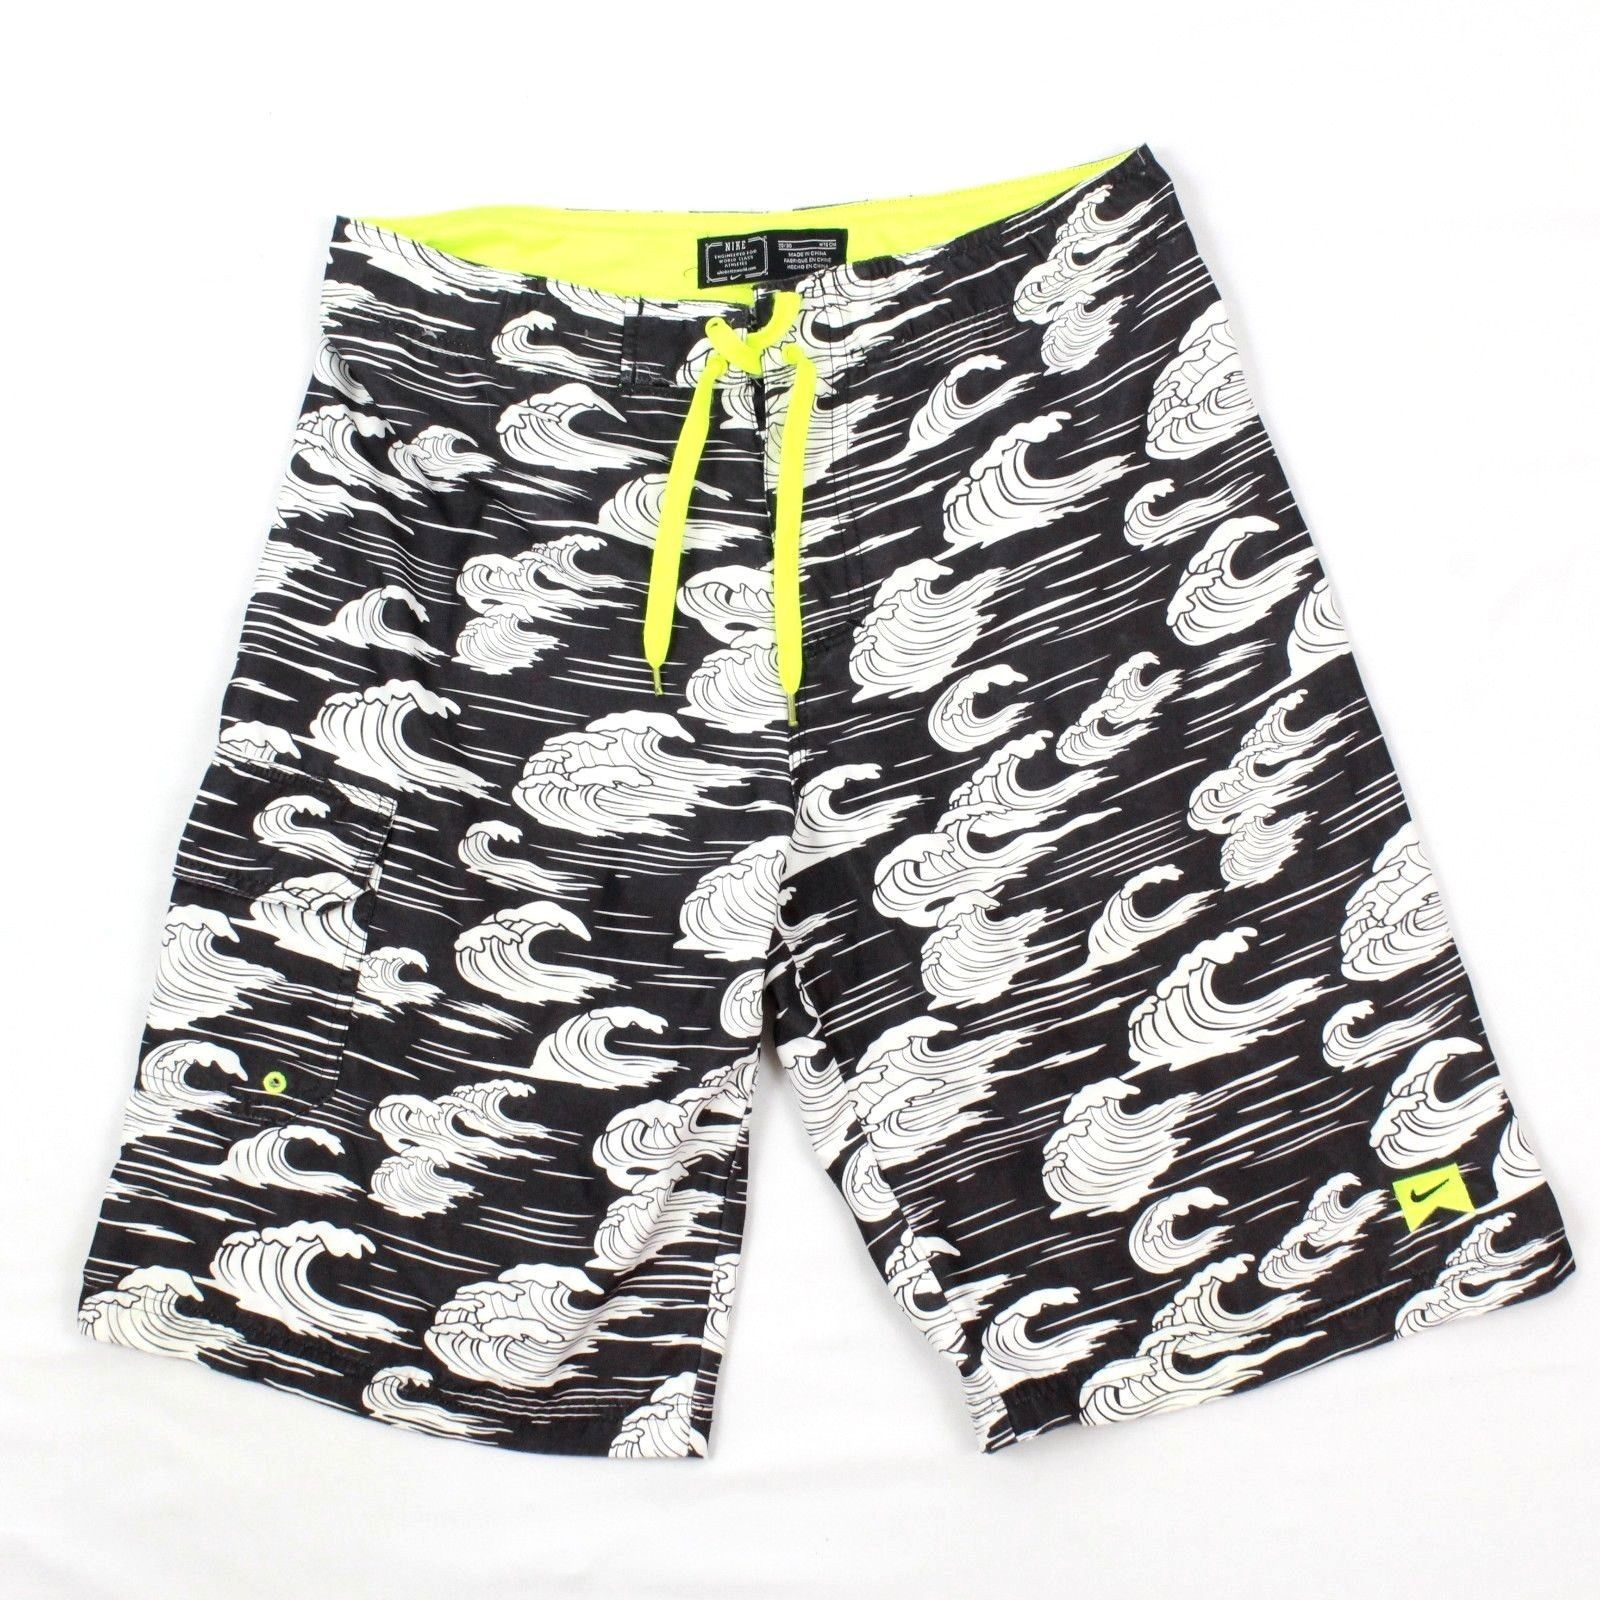 8b4ad8d7fc78f Nike Swim Short Men Boardshorts Size 28 - 30 and 50 similar items. 57